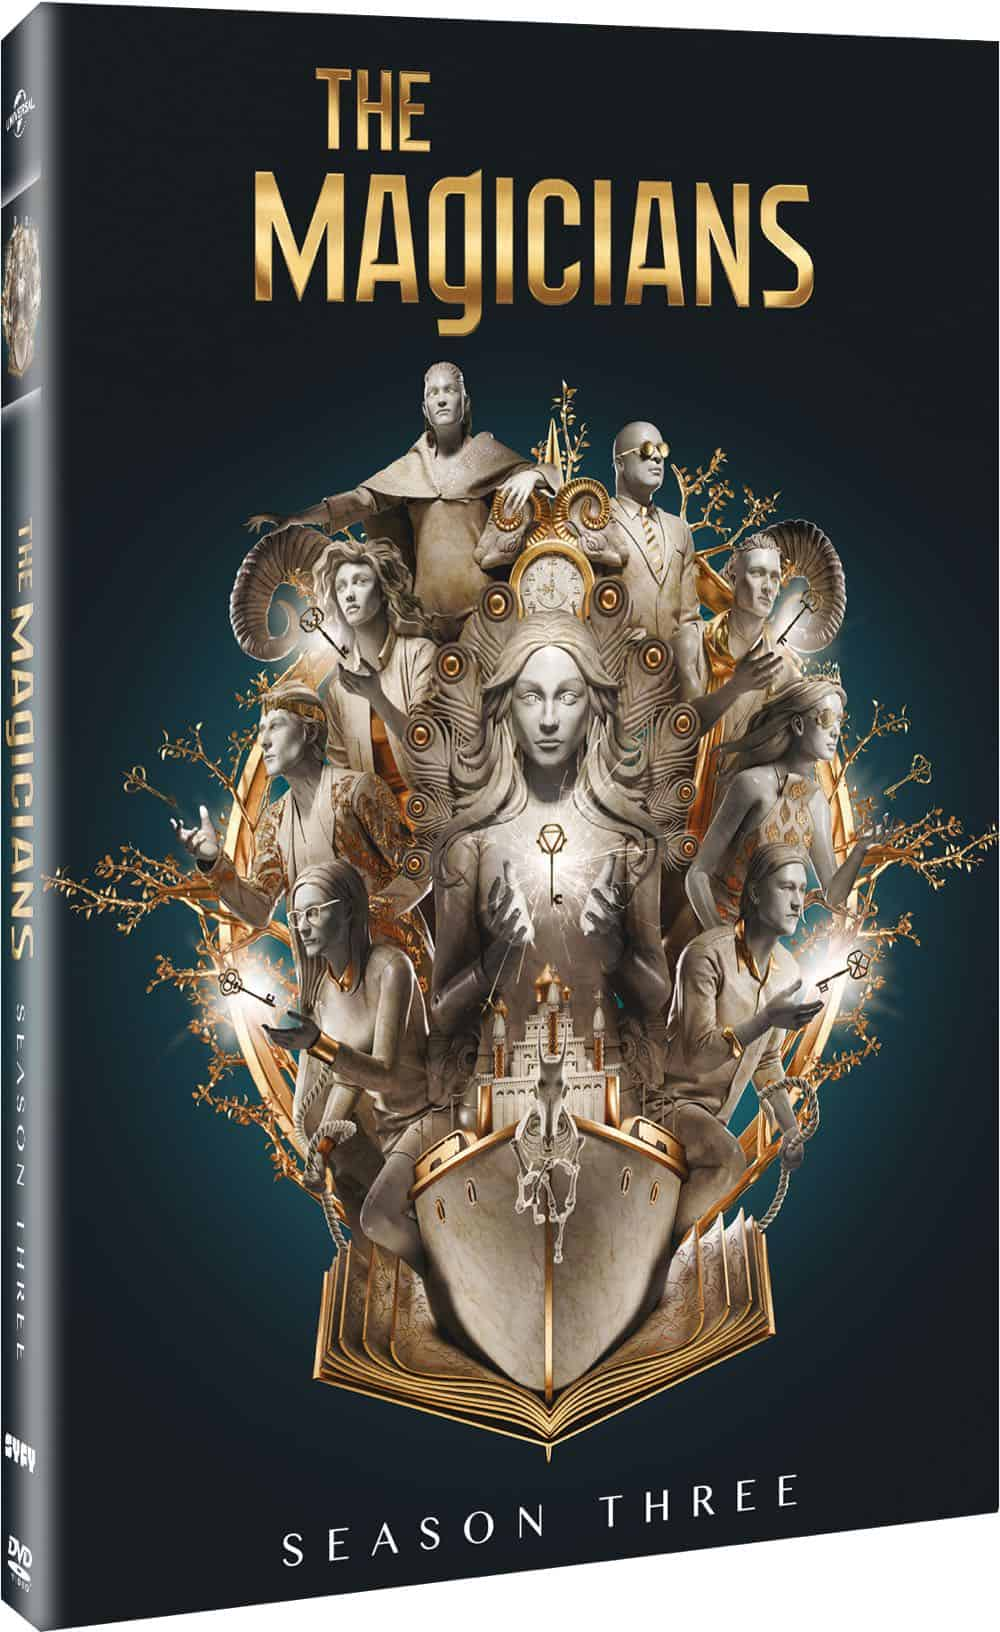 The Magicians Season 3 DVD 3D Cover